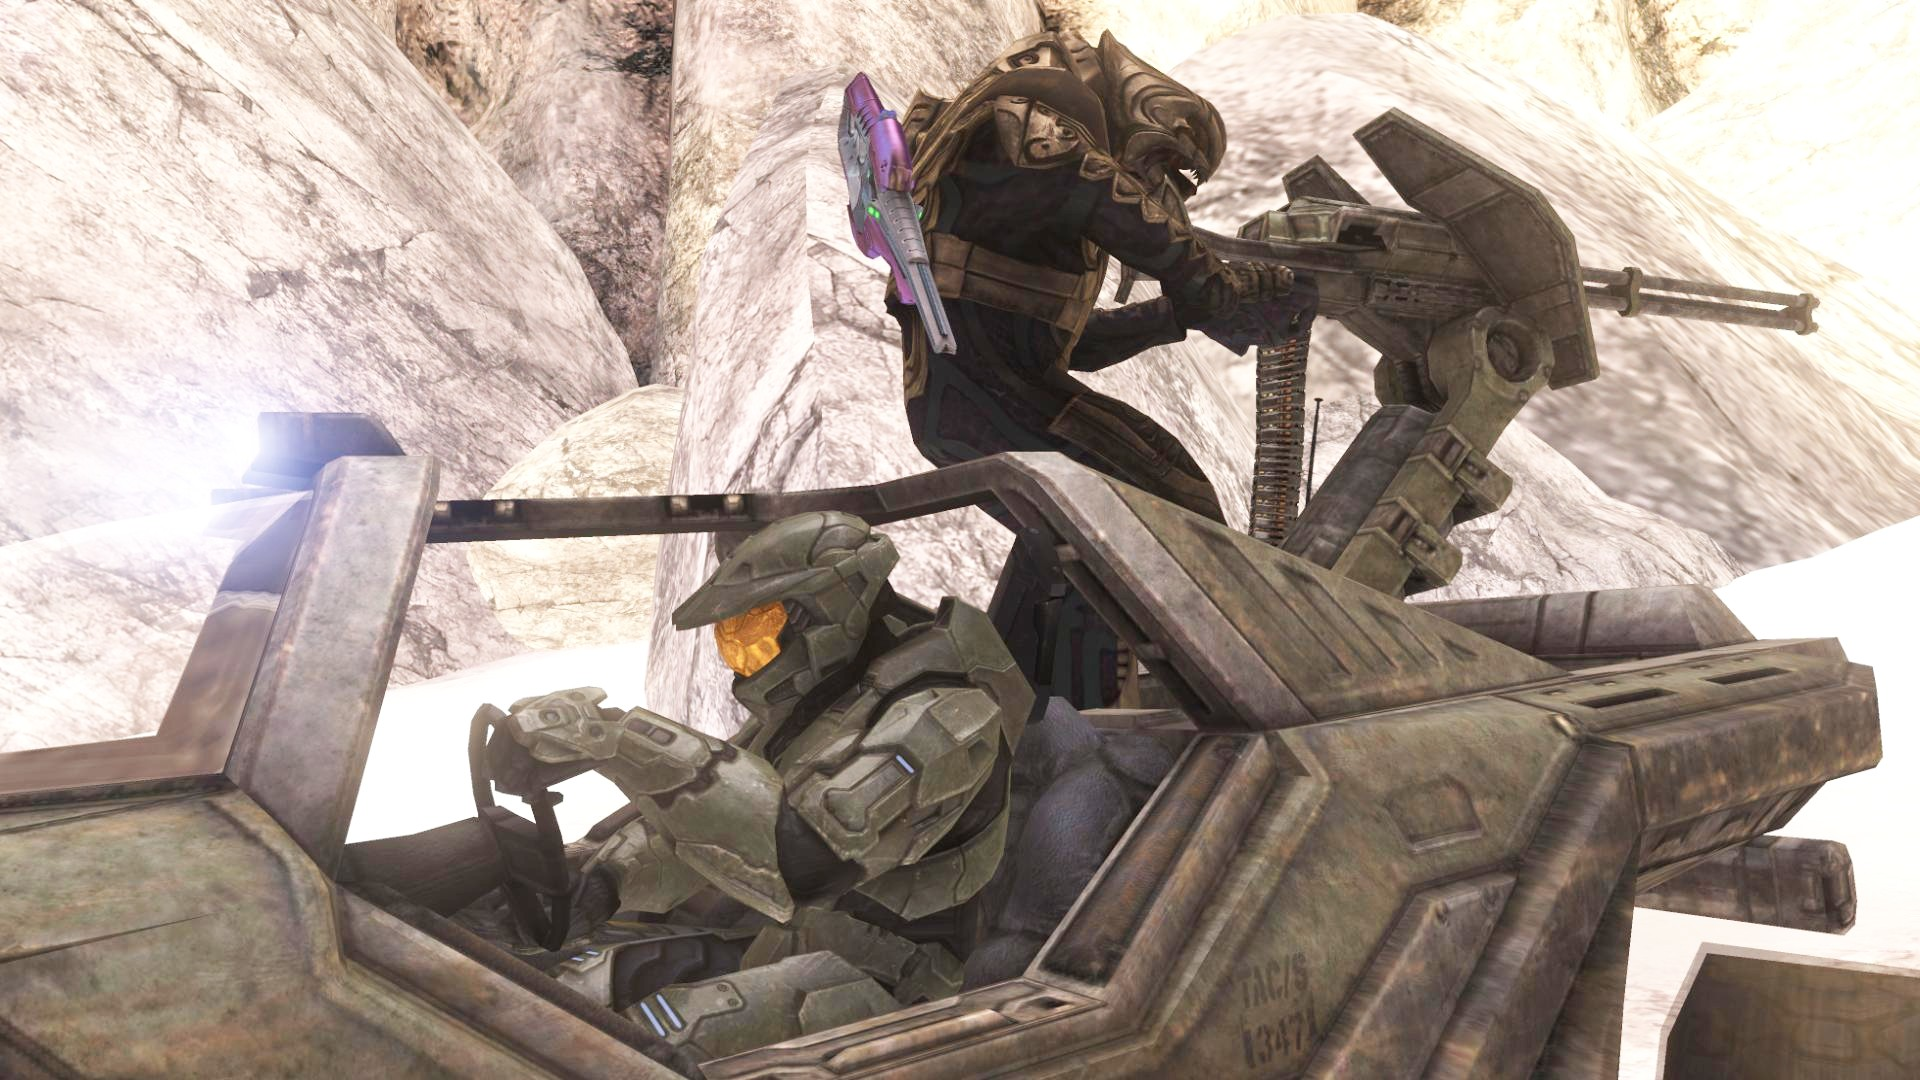 1522704535 0bfd8bd647 o Halo 3: We havent crashed yet?